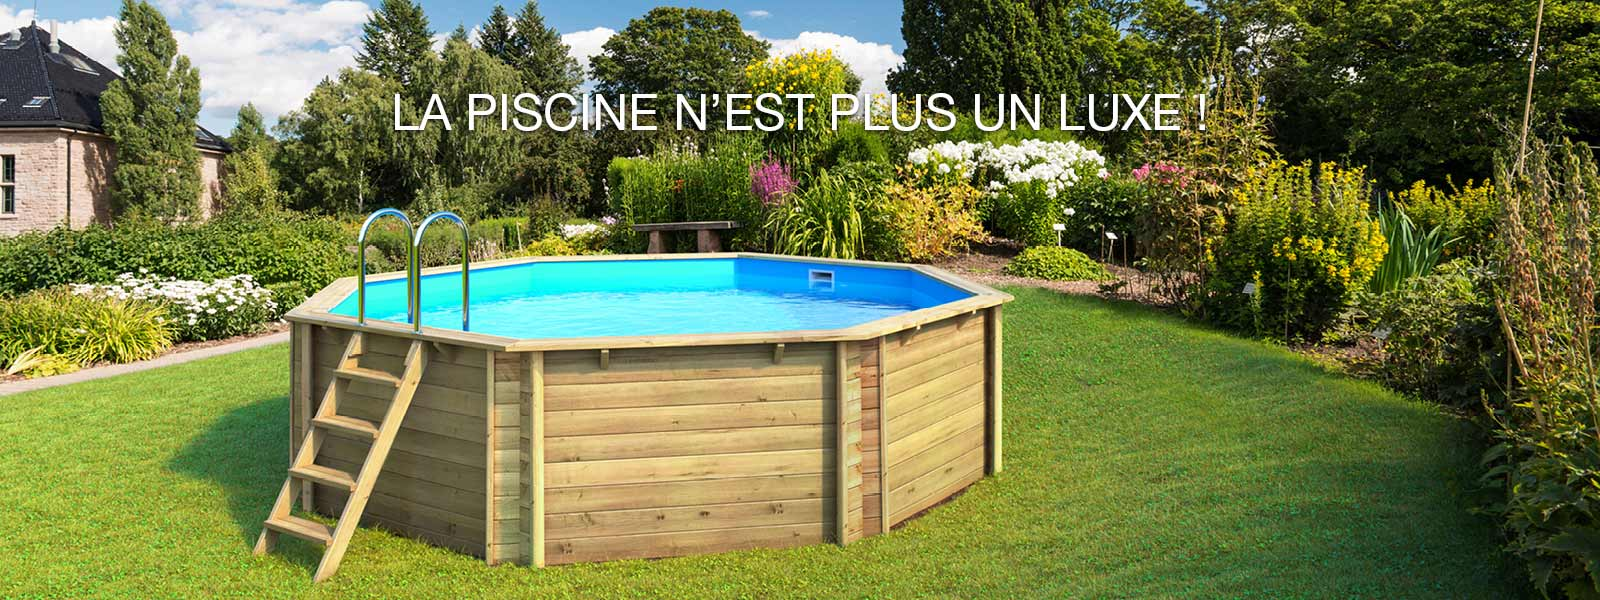 Piscine en bois semi enterre leroy merlin piscine bois for Piscine en bois leroy merlin